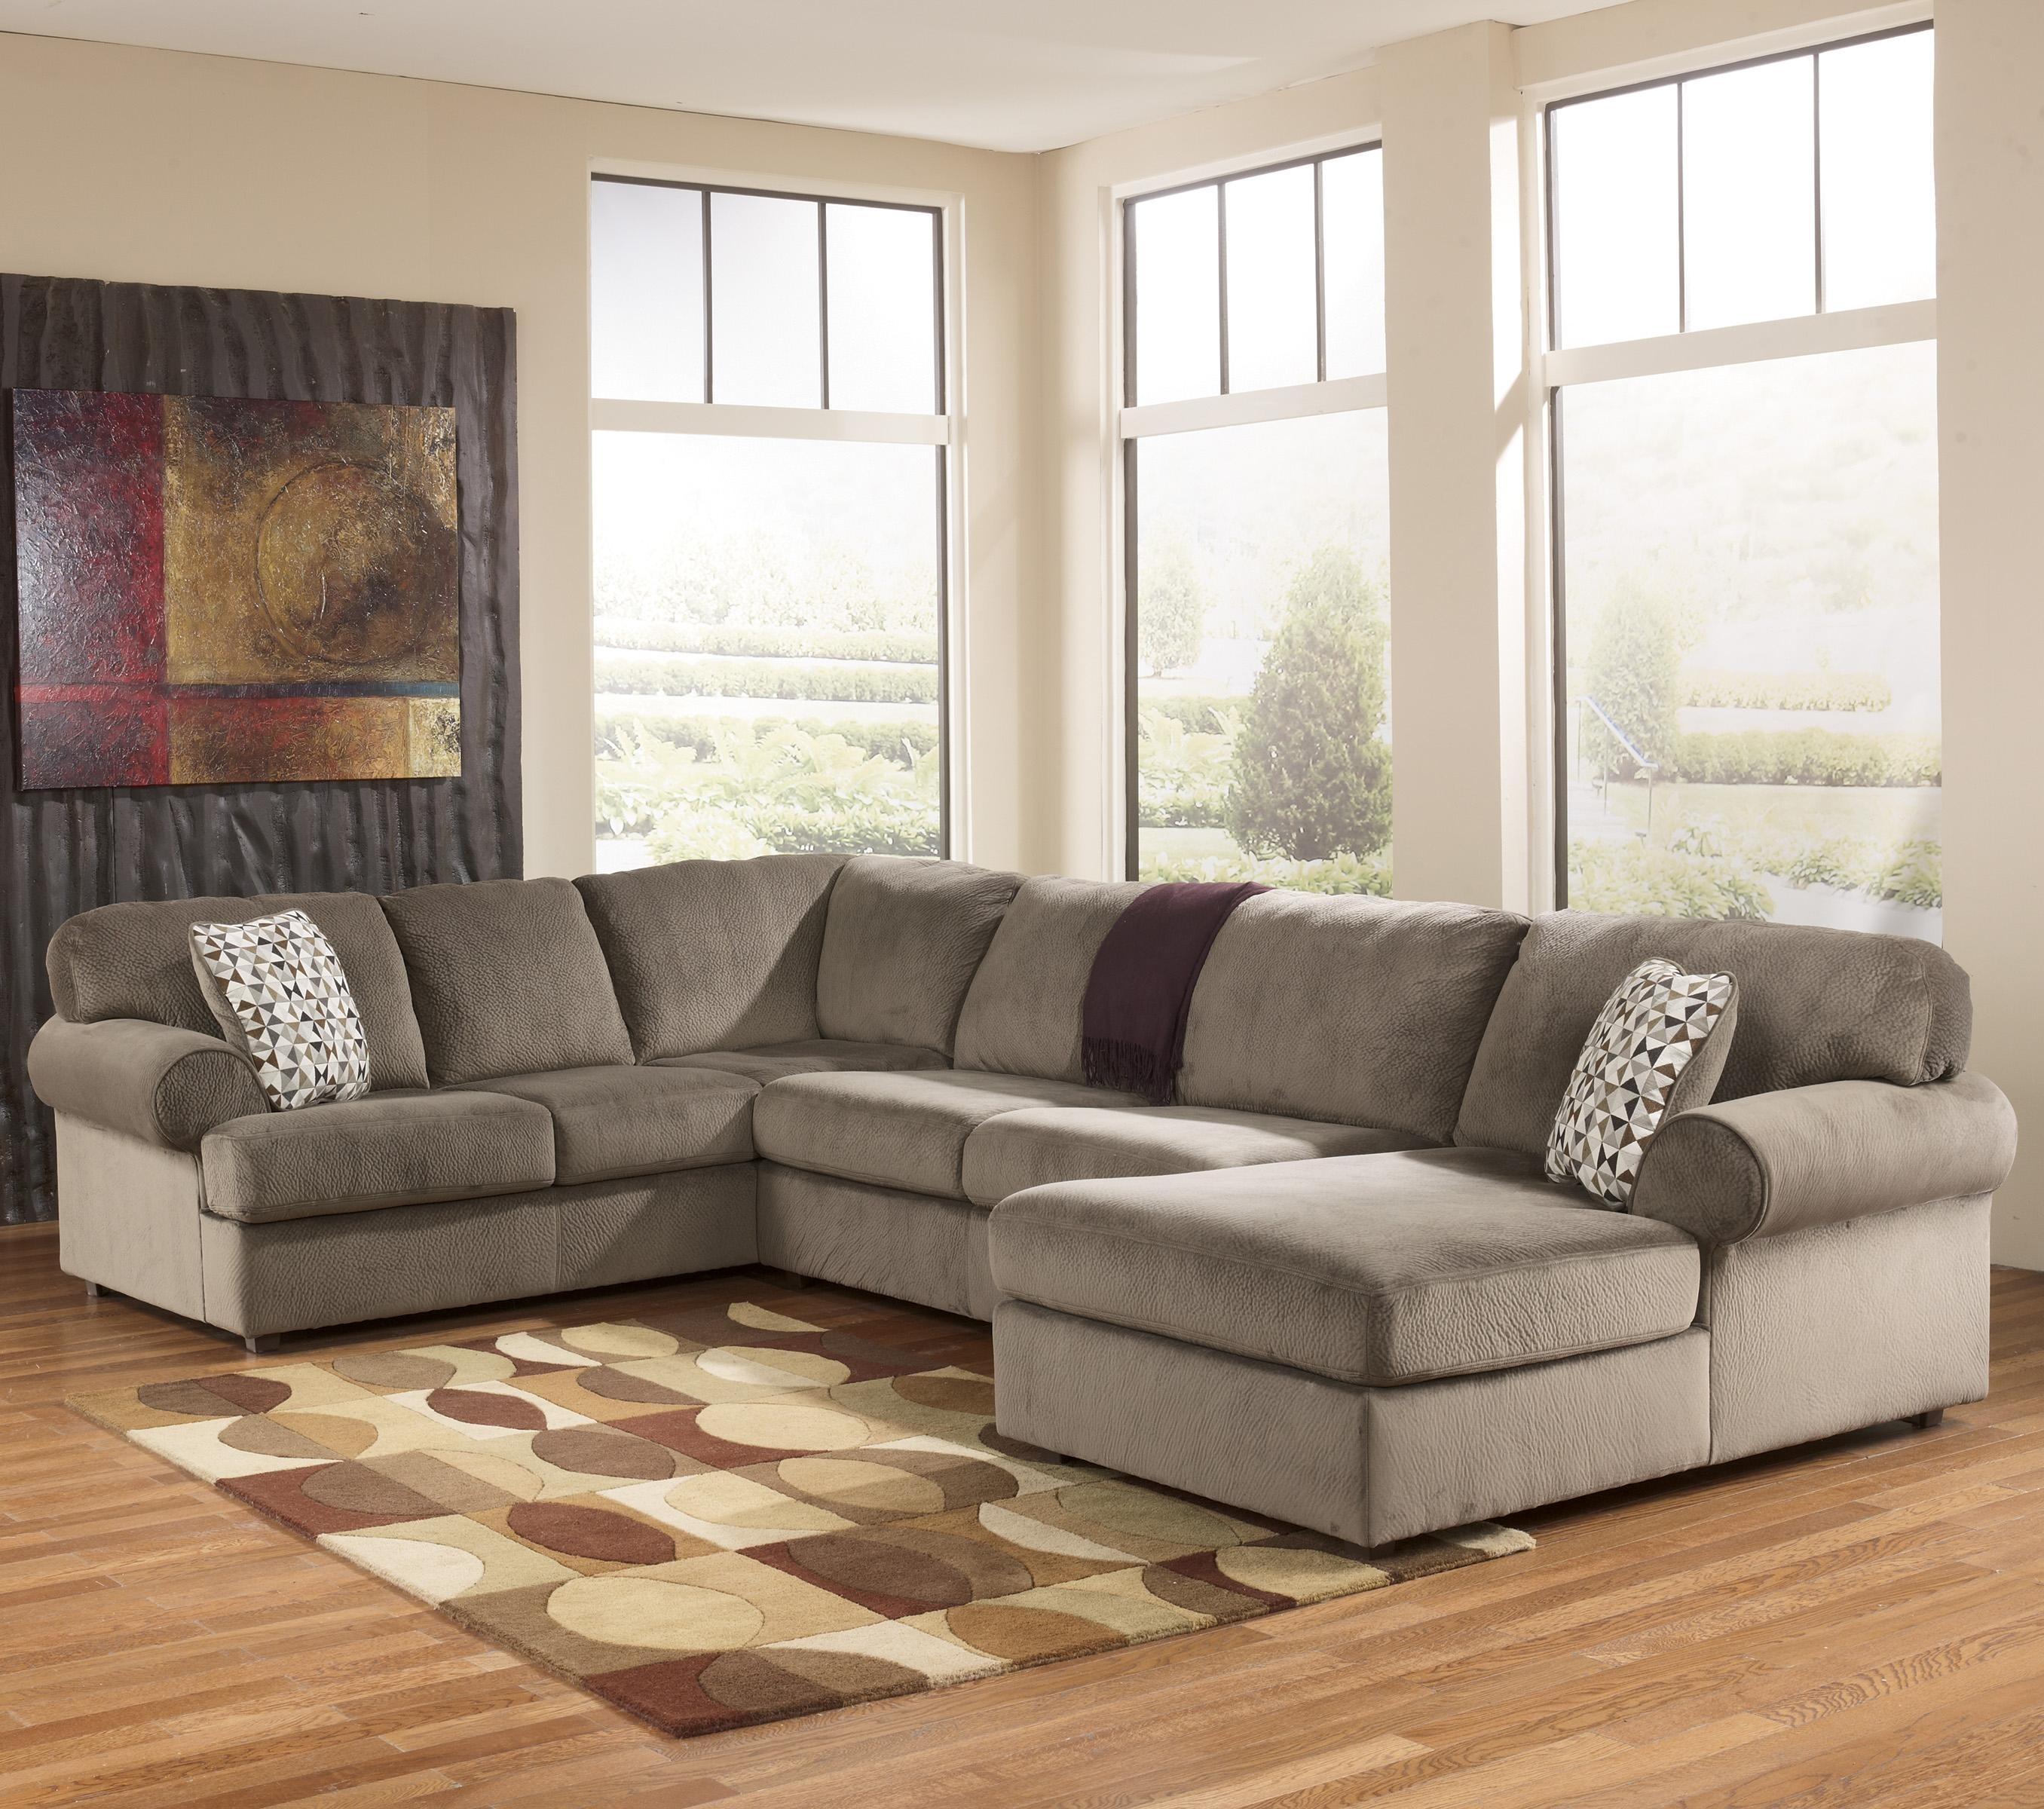 Signature Designashley Jessa Place – Dune Casual Sectional Sofa In Clarksville Tn Sectional Sofas (View 8 of 10)